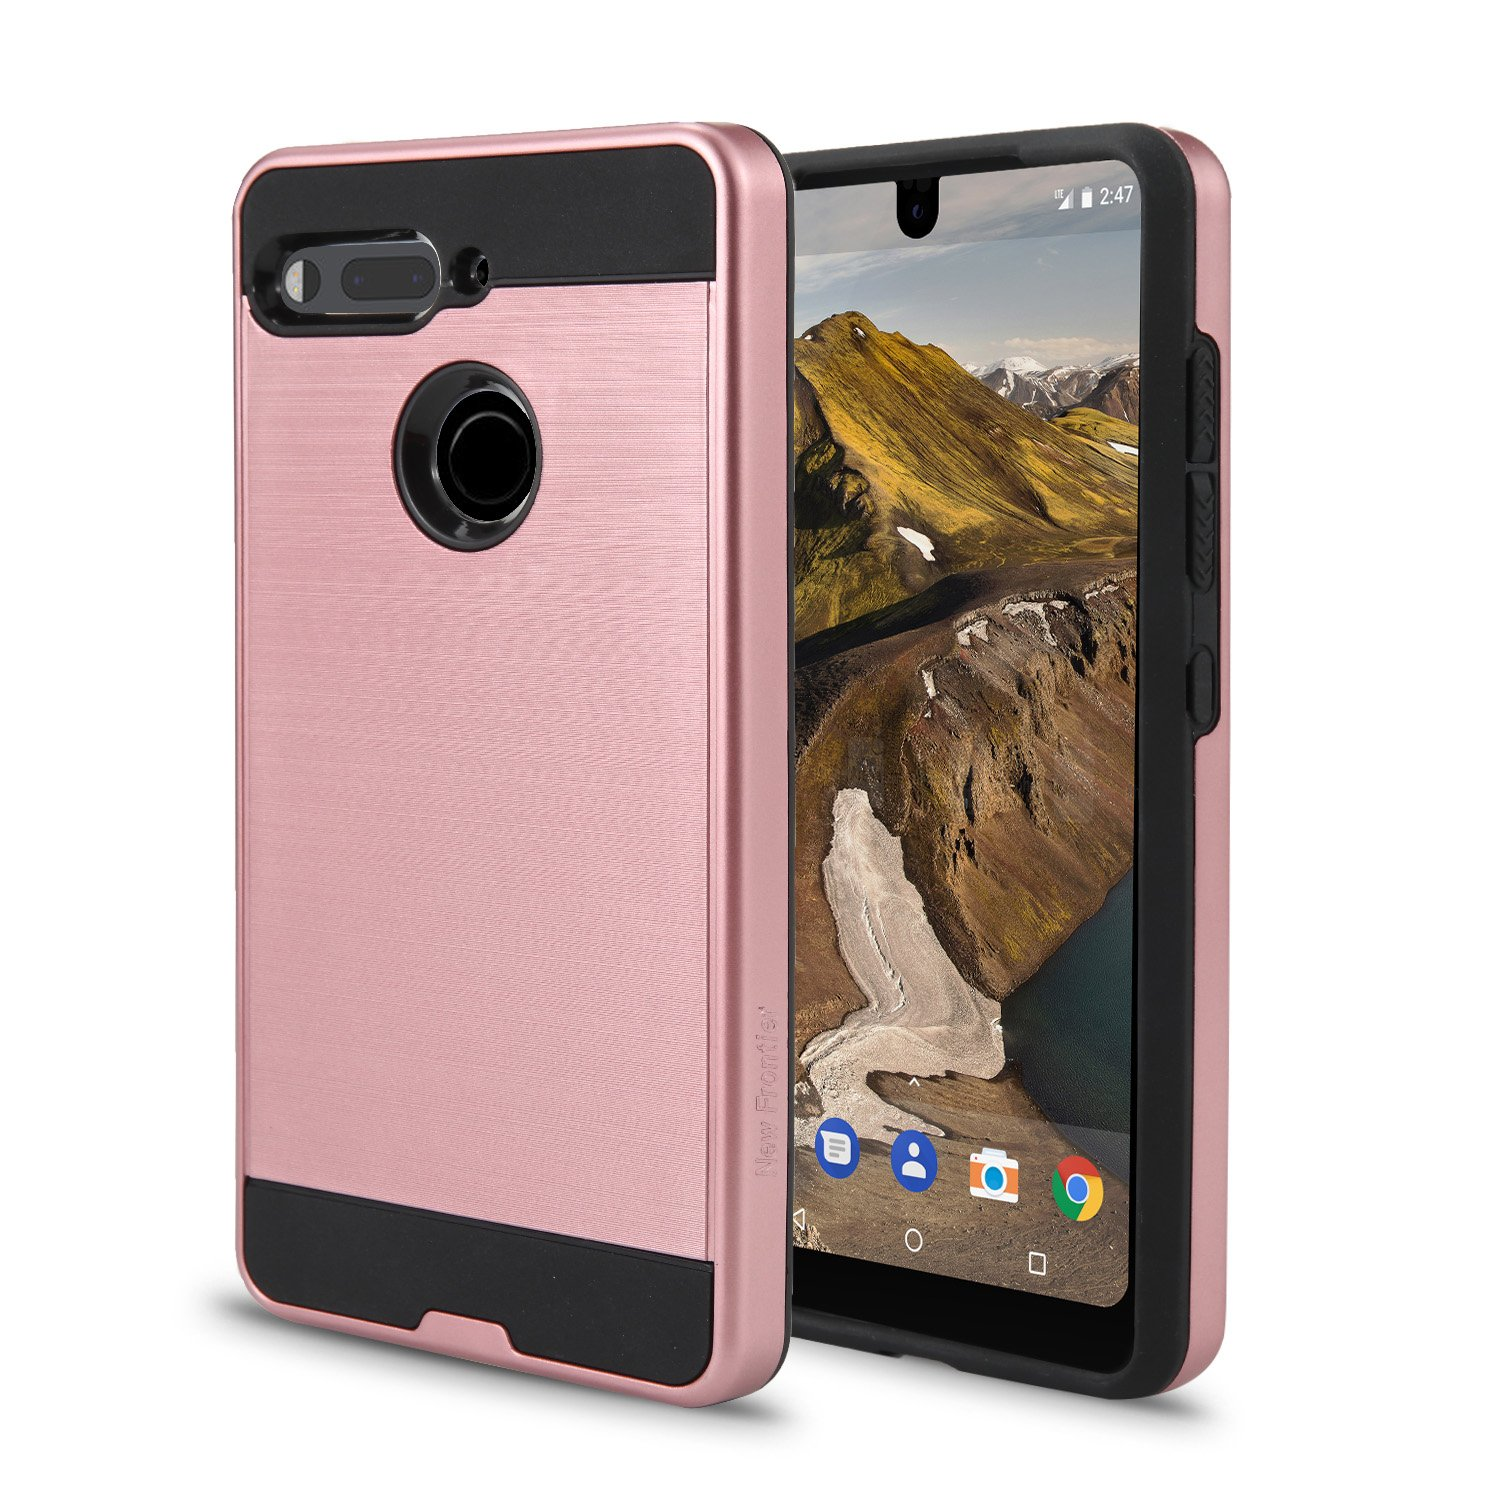 Essential Phone PH-1 Case, Slim Armor Hybrid Cover [Scratch/Dust Proof] Defender Dual Layer Shockproof Protection Case (VGC Silver)